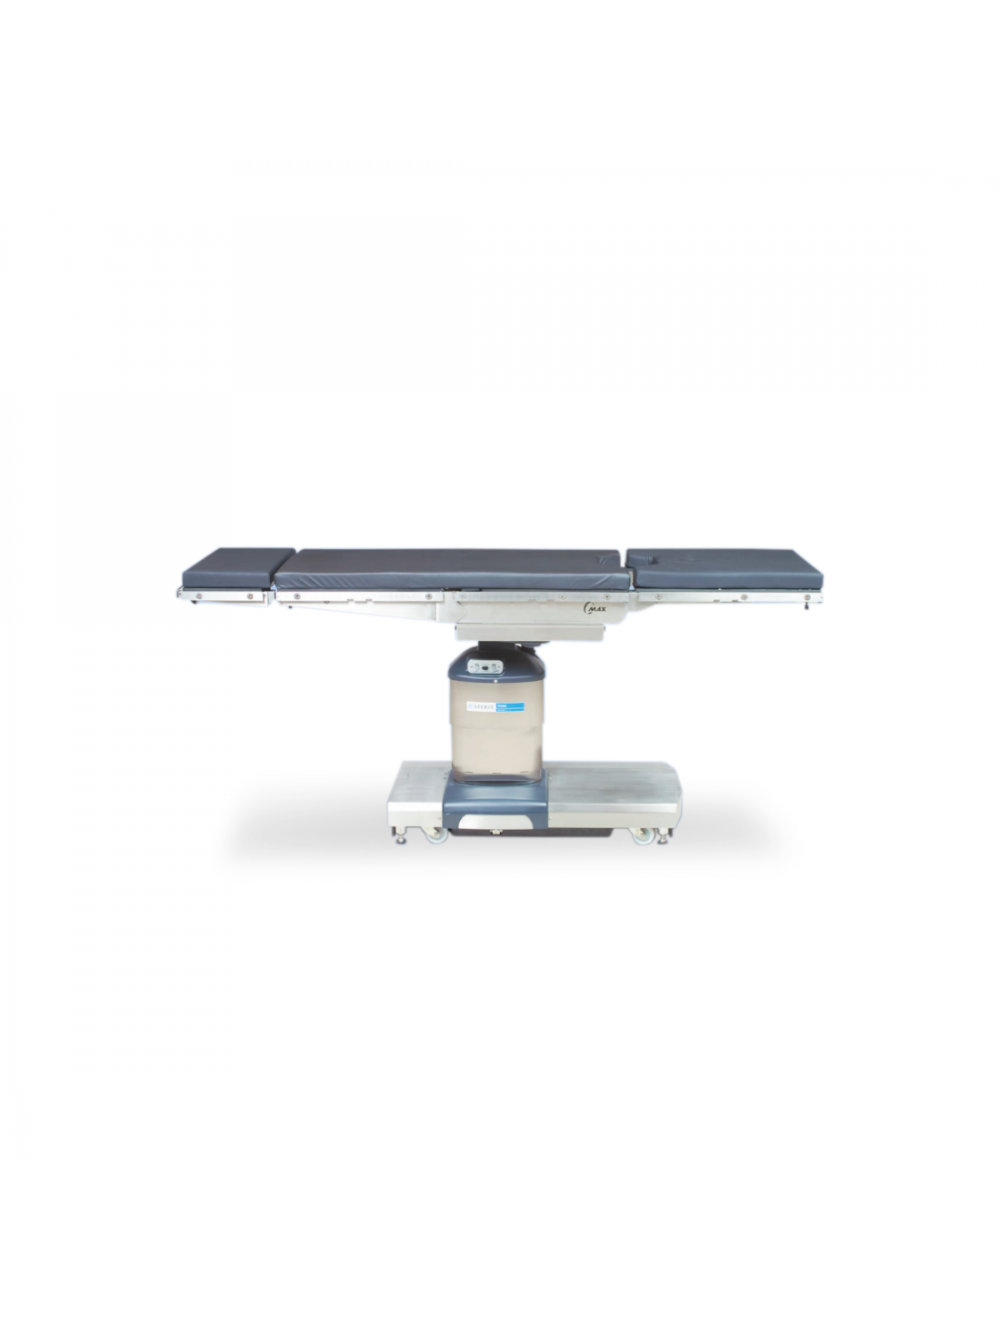 Steris Amsco C-Max Surgical Table For Sale - Used